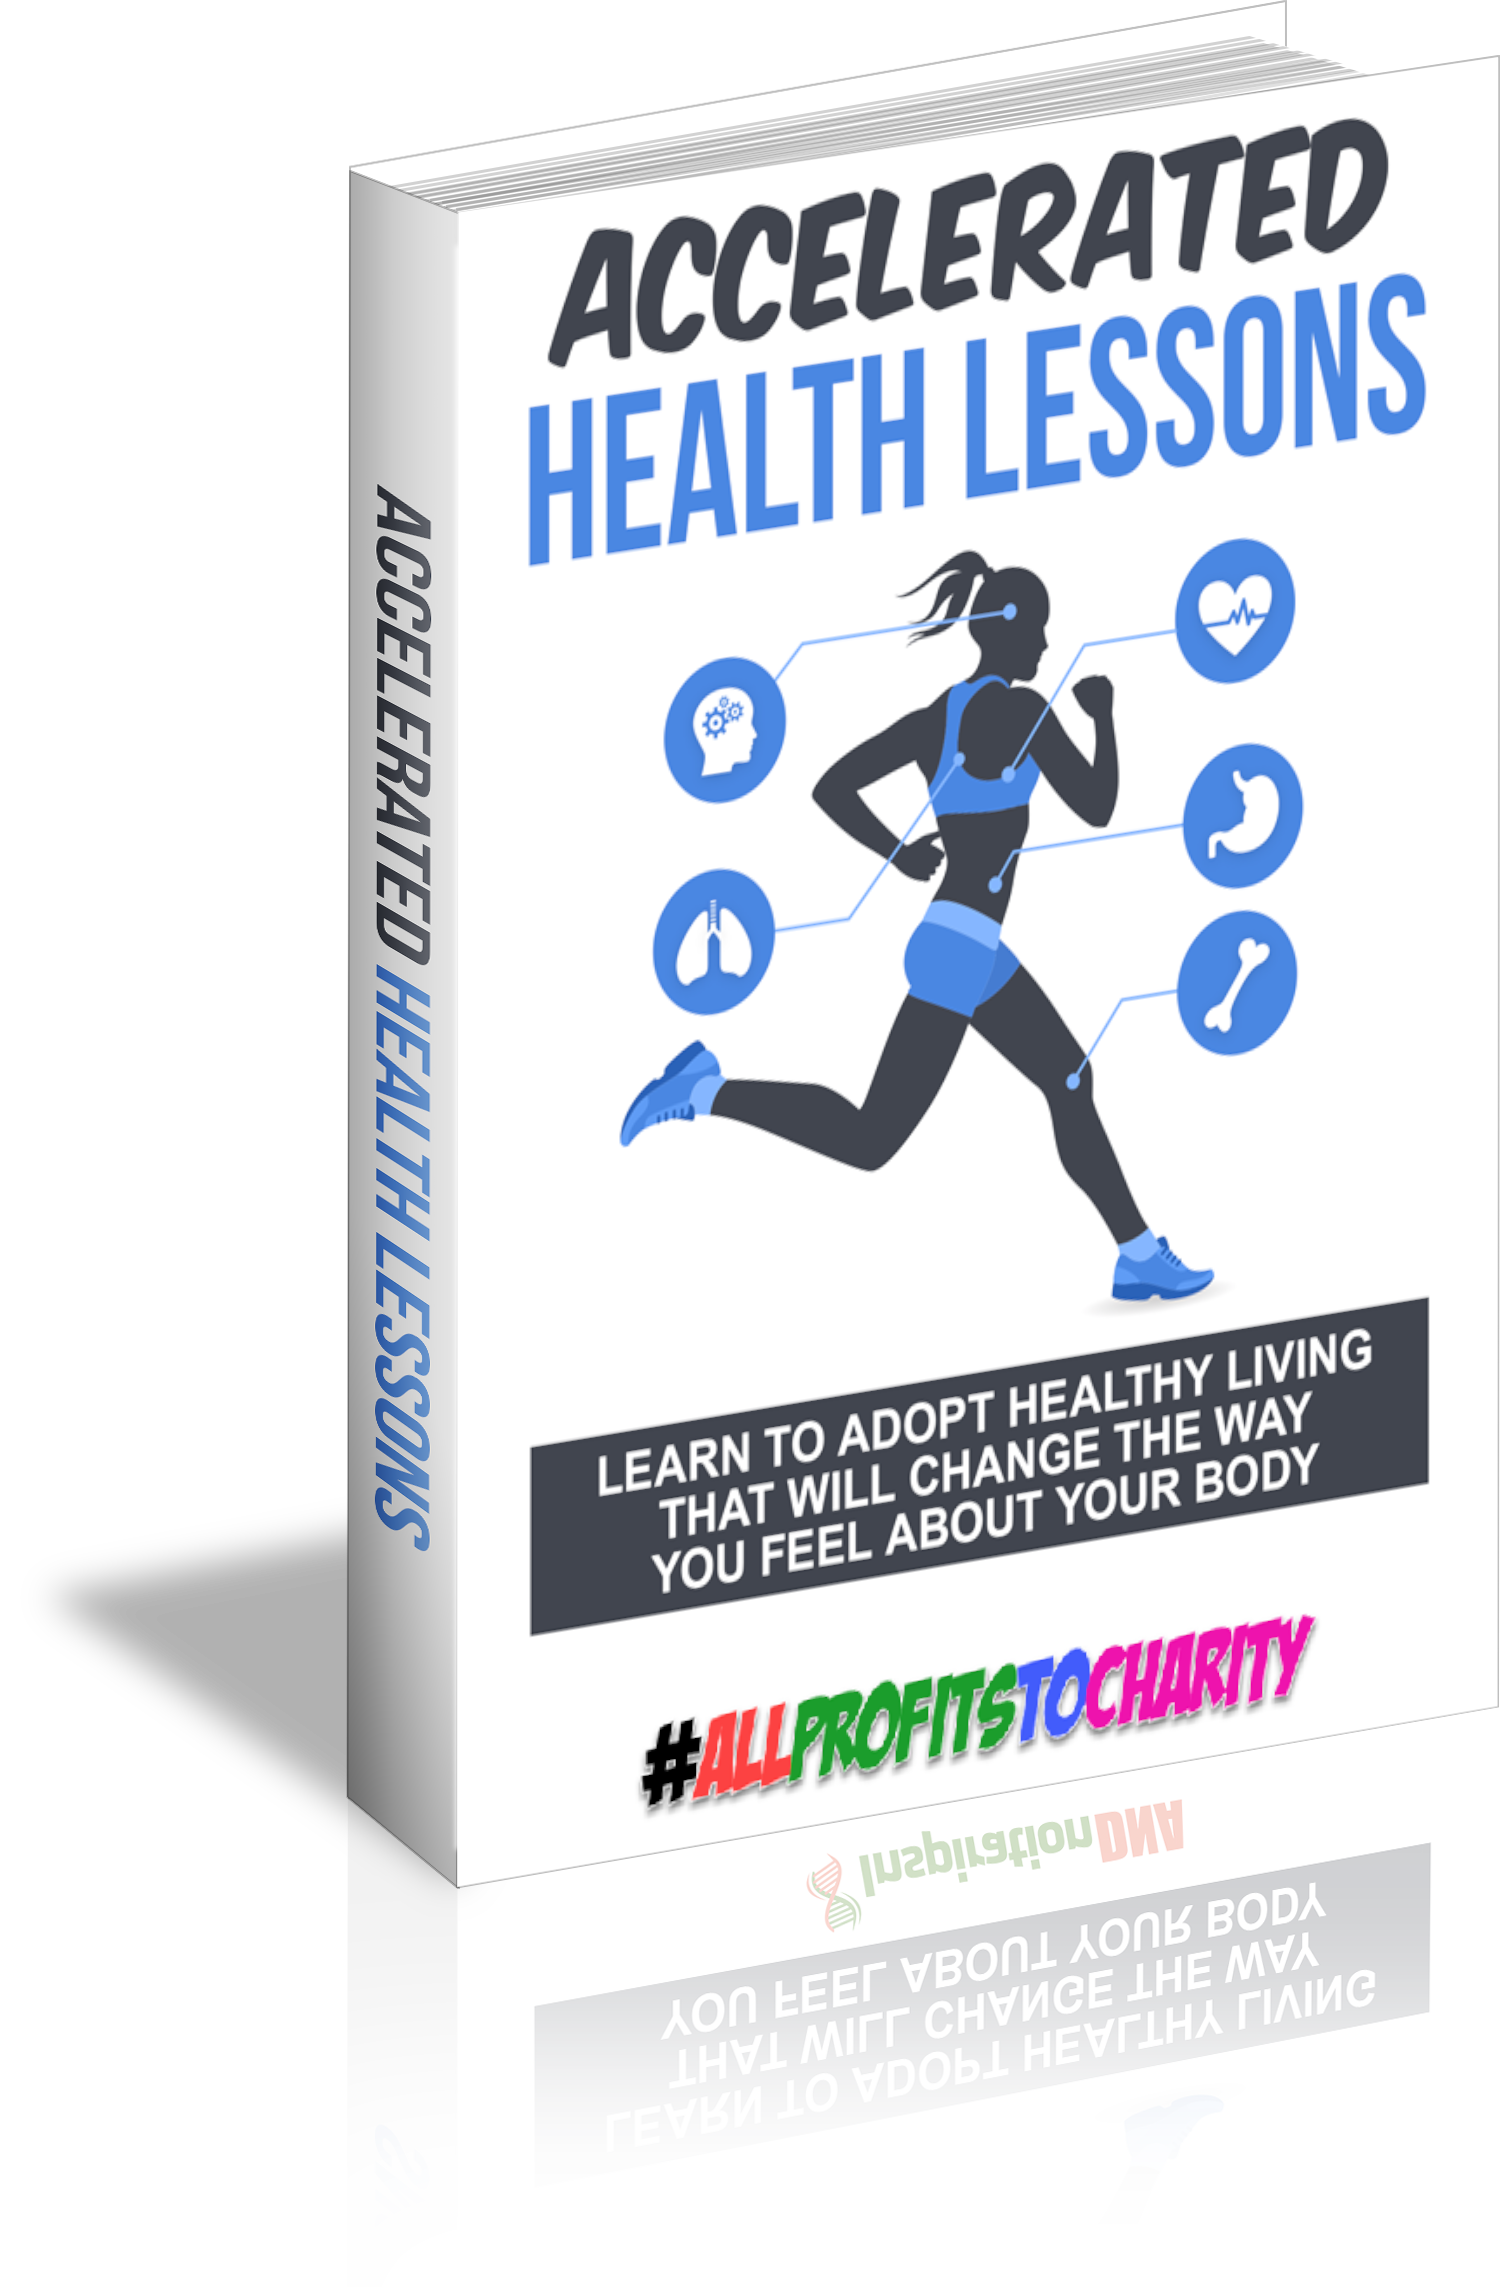 Accelerated Health Lessons cover